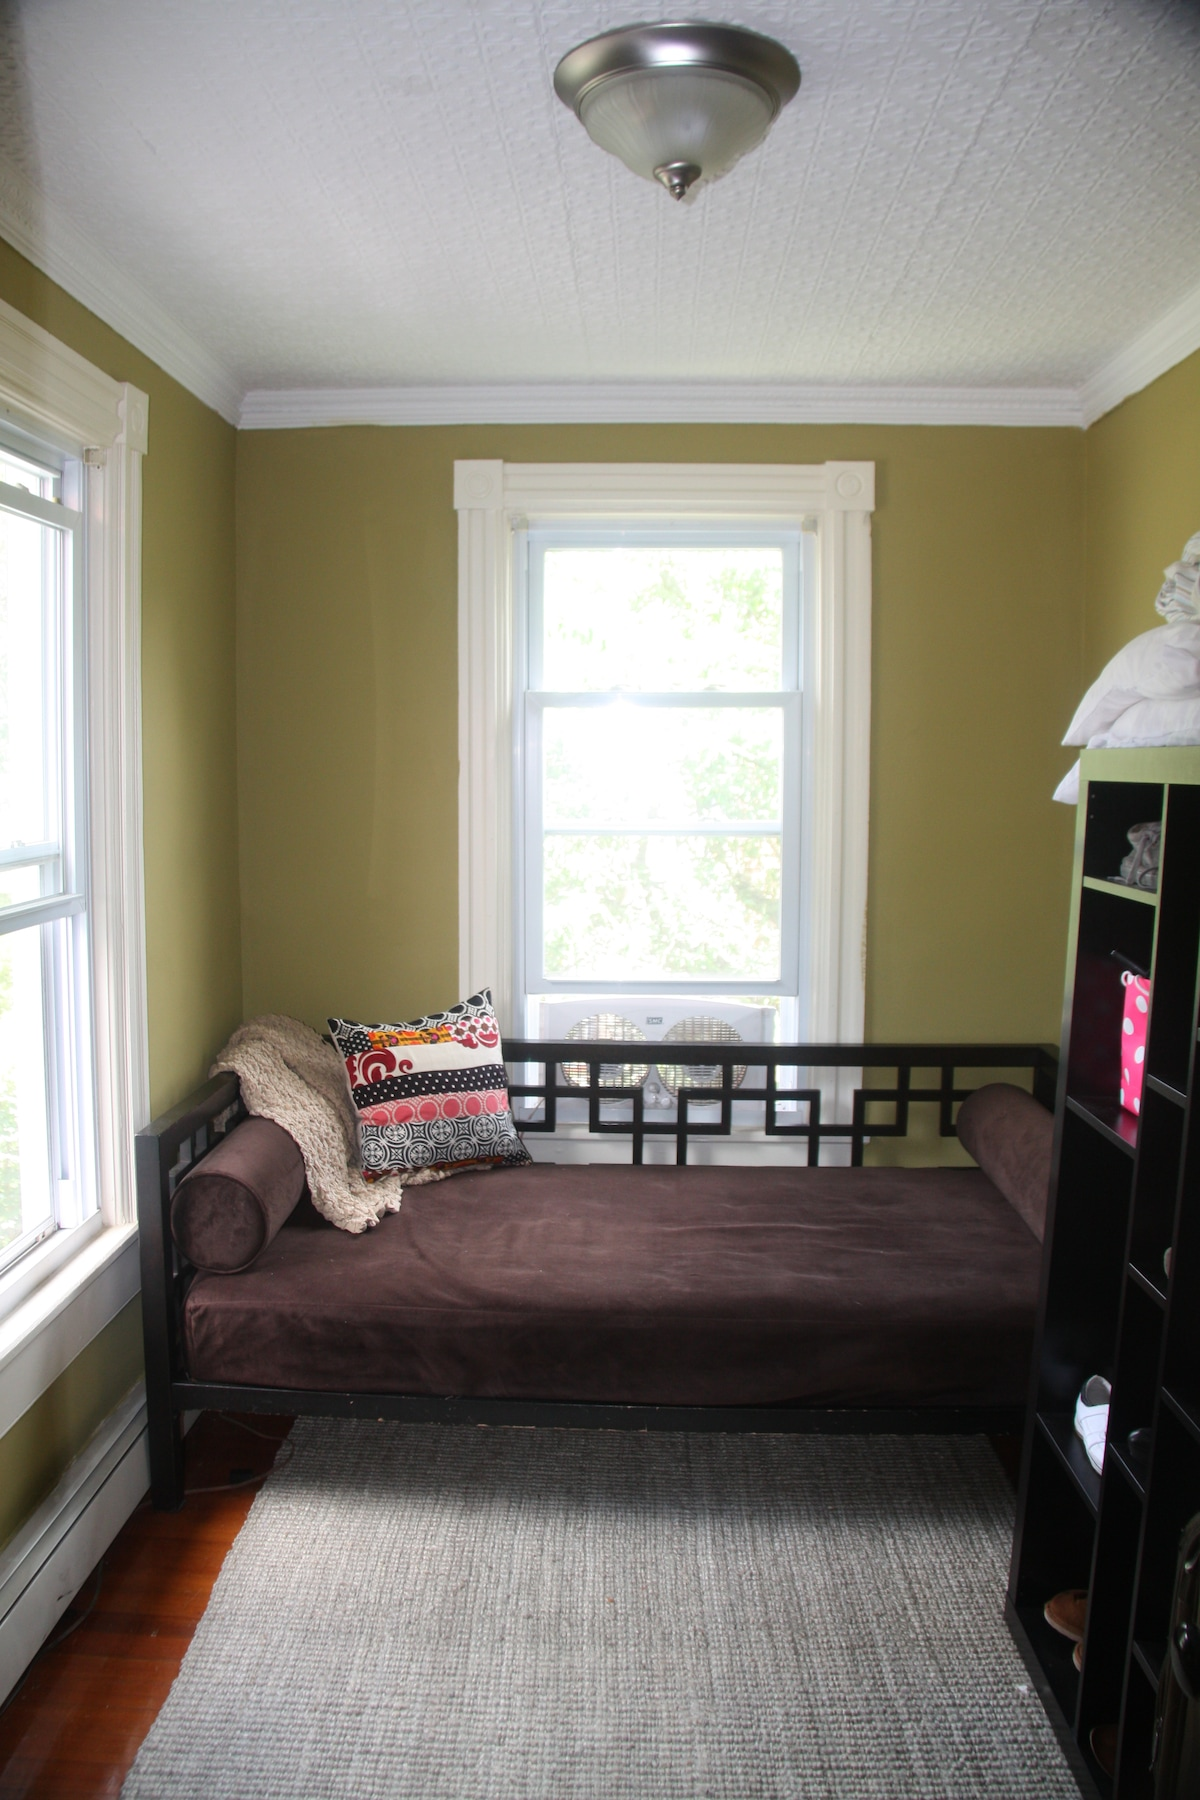 The Window Room (one of the upstairs guest rooms - twin daybed).